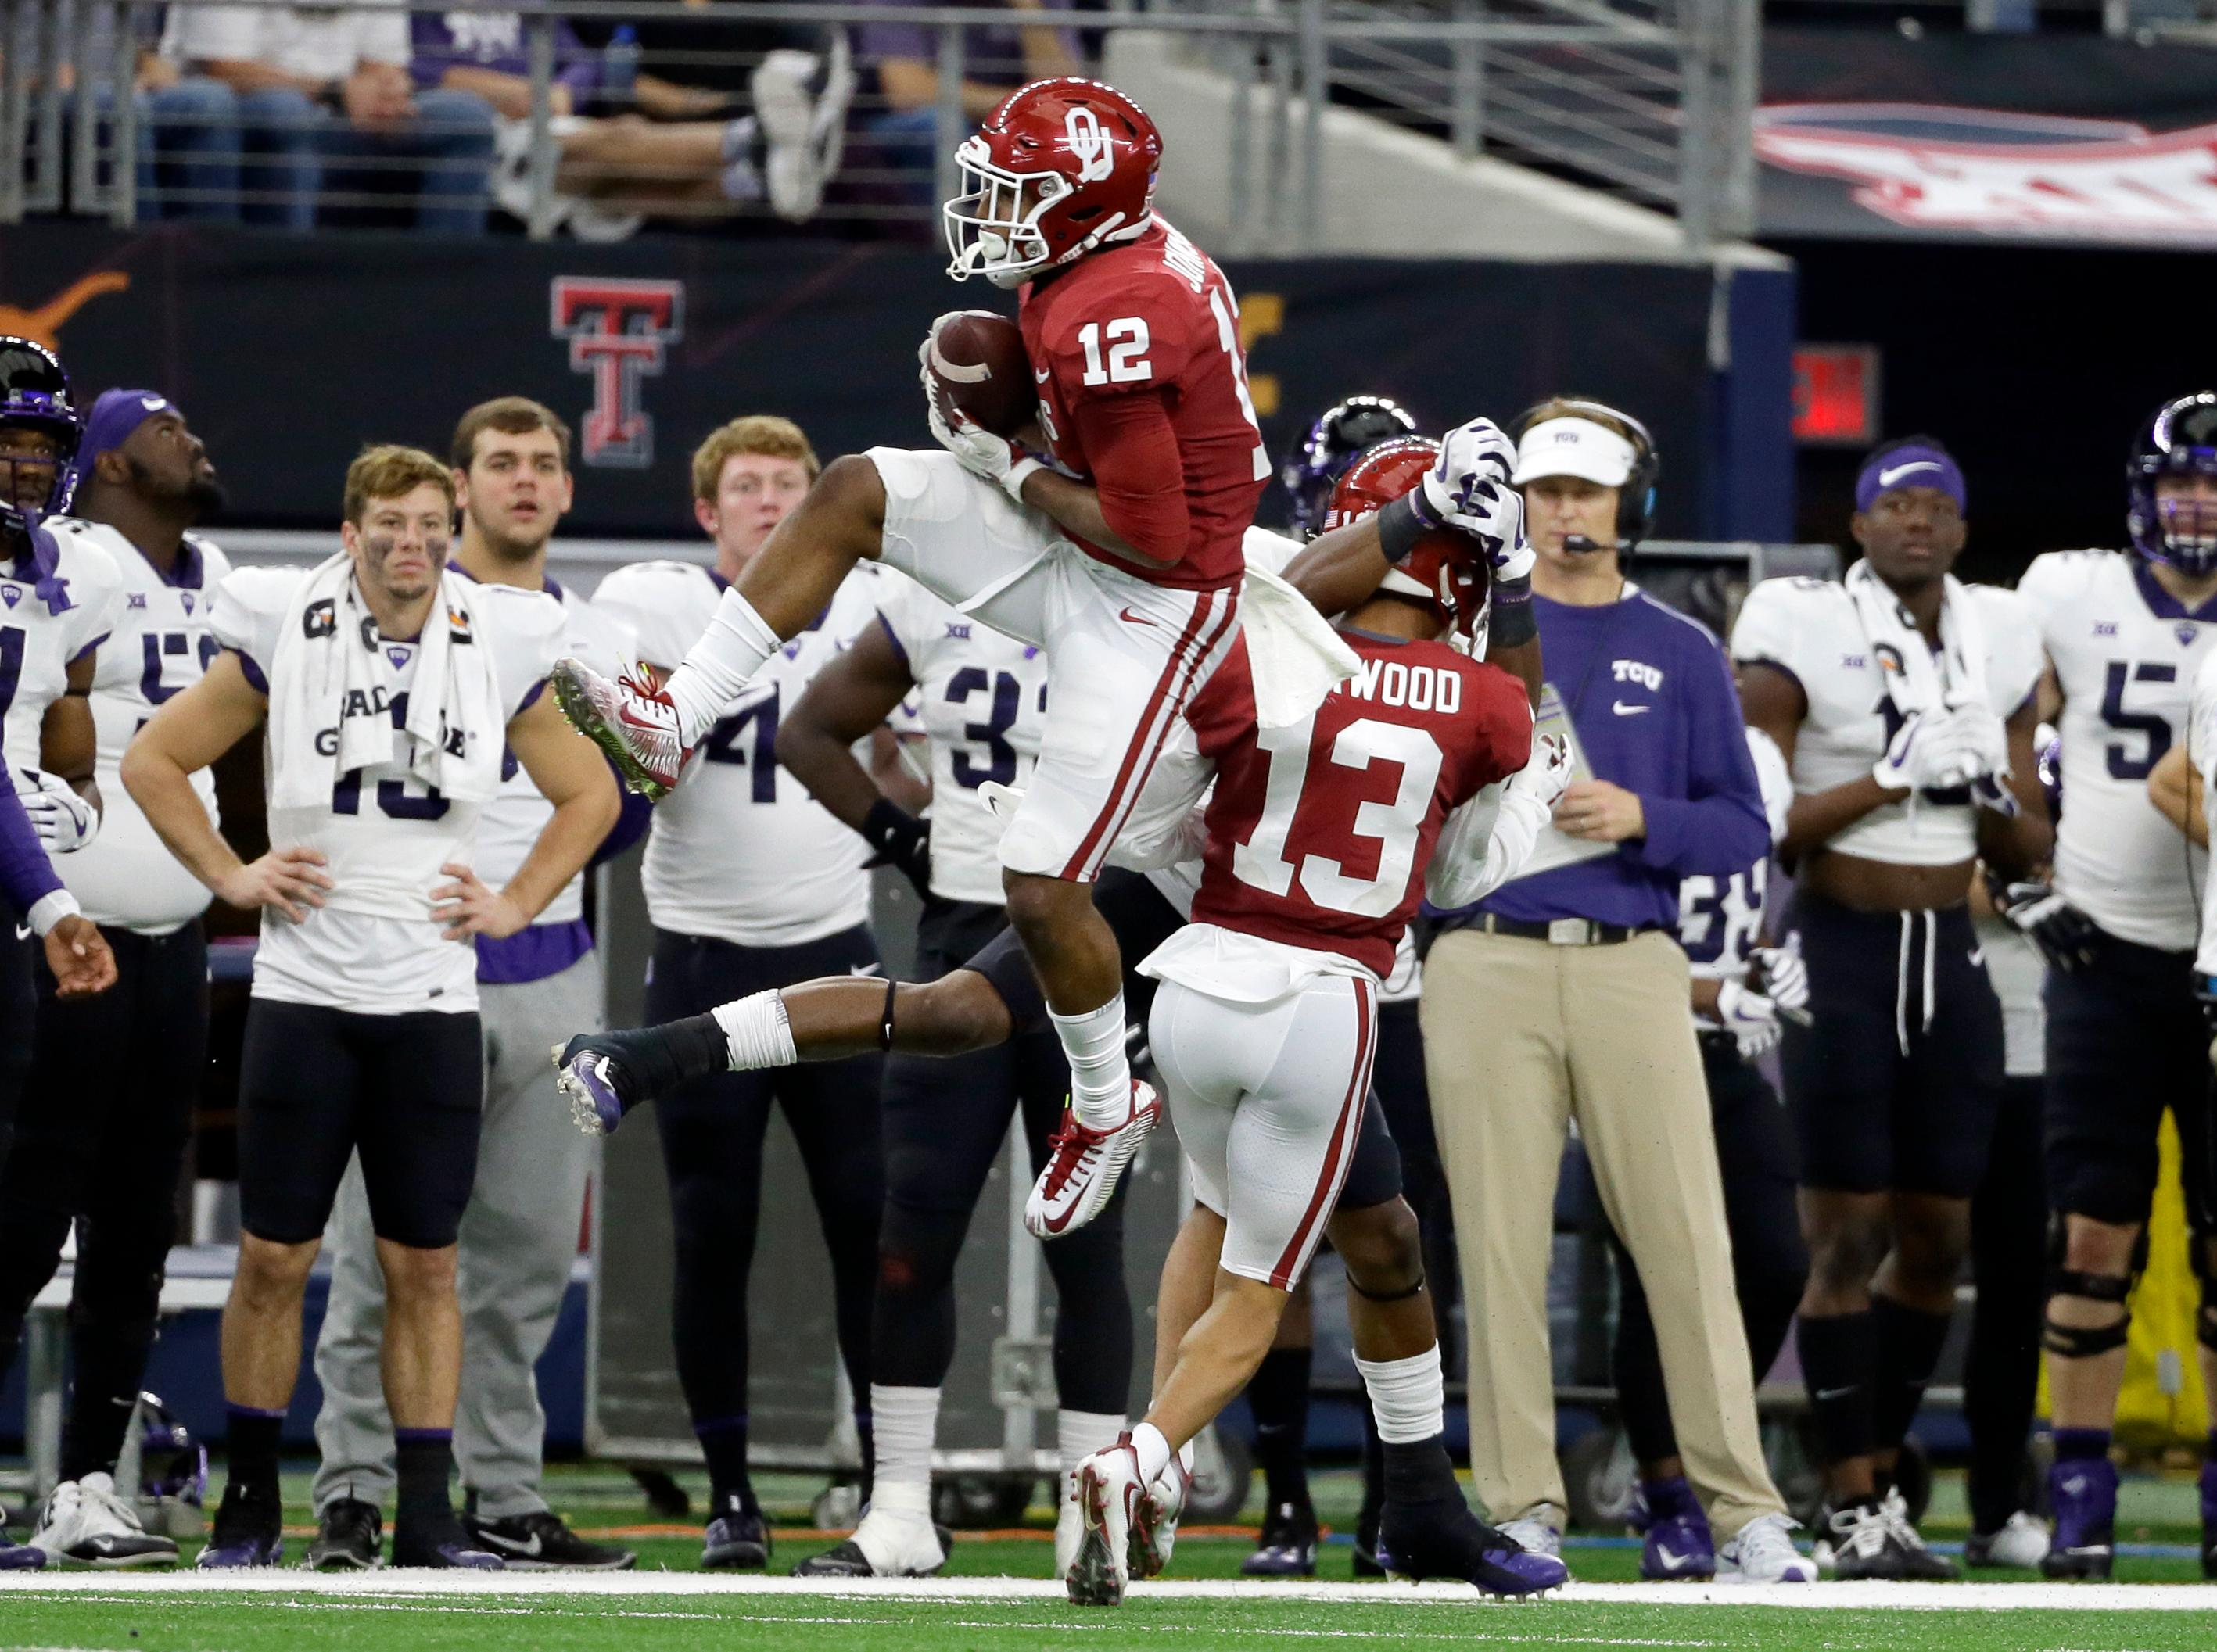 The TCU bench looks on as Oklahoma defensive back Will Johnson (12) intercepts a pass intended for TCU wide receiver John Diarse (9), rear, as cornerback Tre Norwood (13) helps on the play in the second half of the Big 12 Conference championship NCAA college football game, Saturday, Dec. 2, 2017, in Arlington, Texas. (AP Photo/Tony Gutierrez)